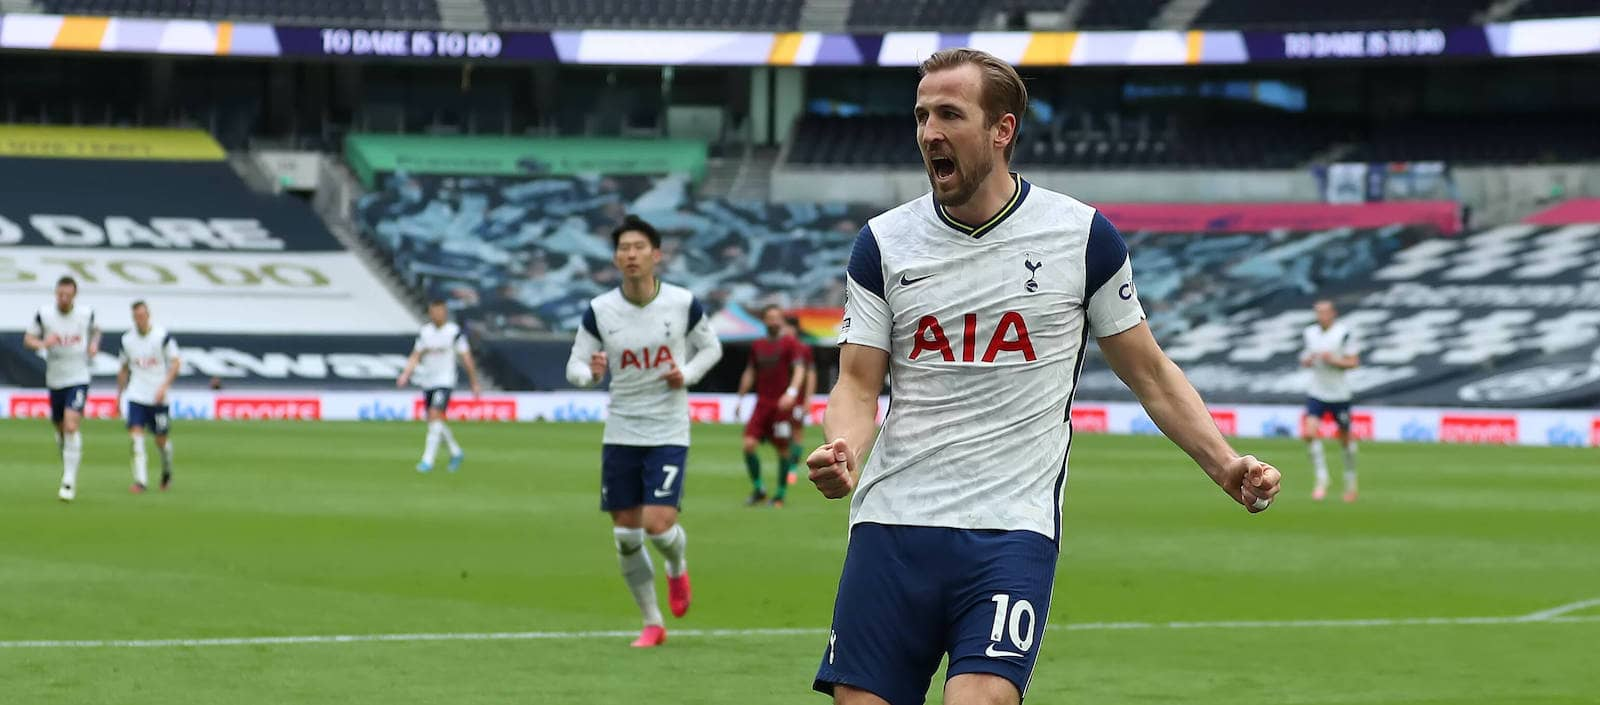 Ole Gunnar Solskjaer Pushing For Harry Kane Transfer To Man United Man United News And Transfer News The Peoples Person